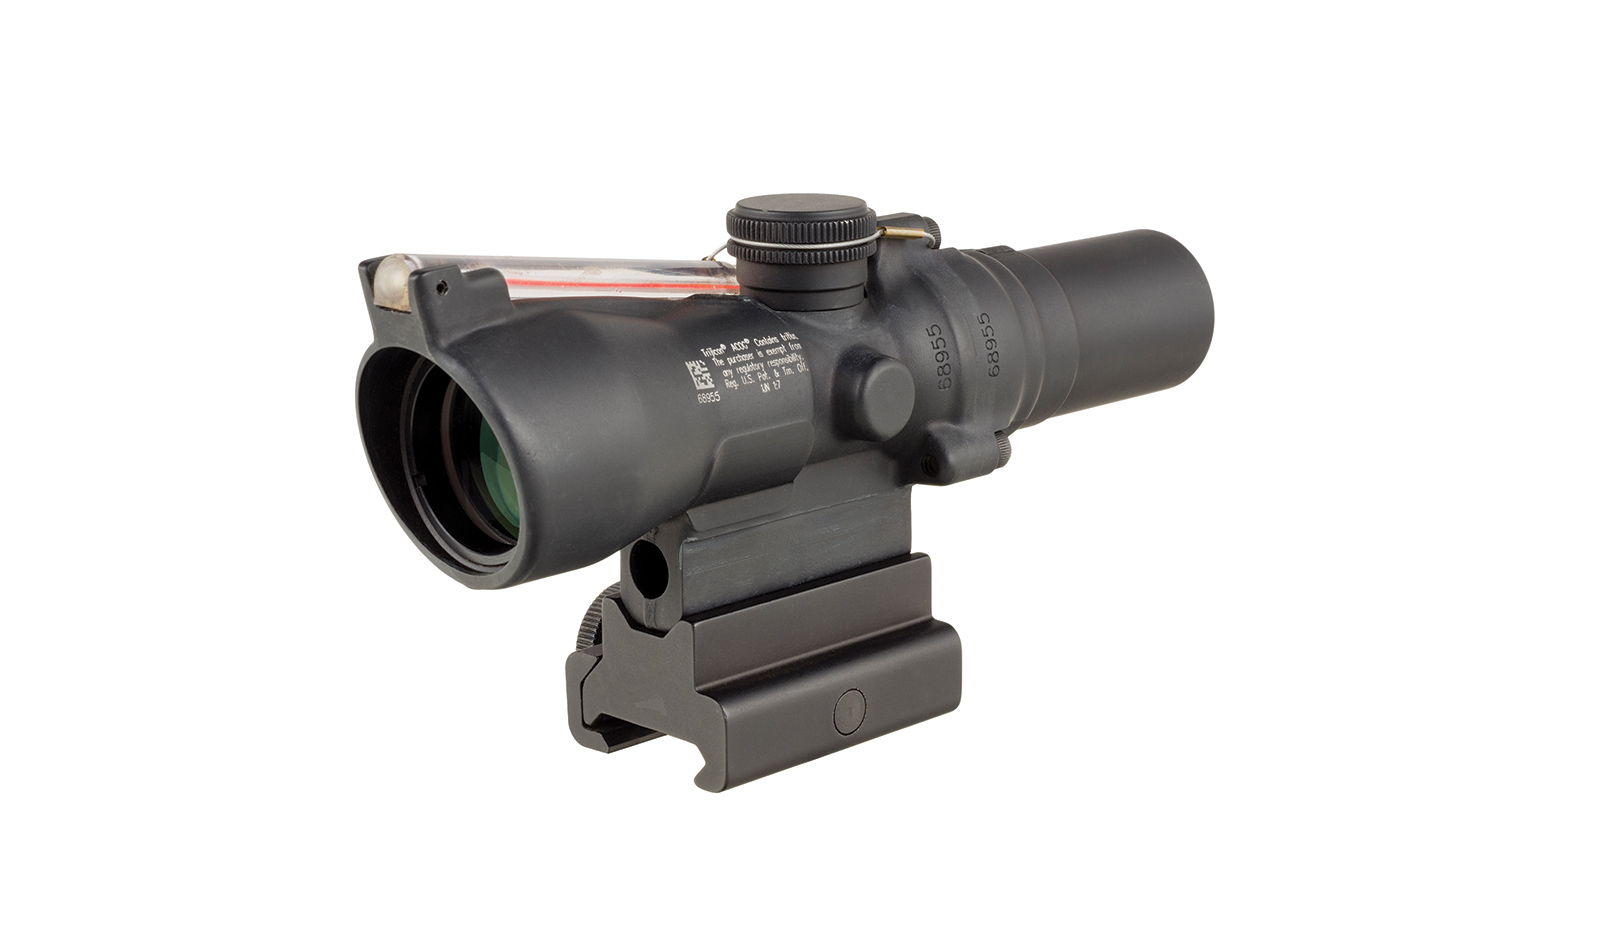 Trijicon ACOG® 1.5x24 Riflescope